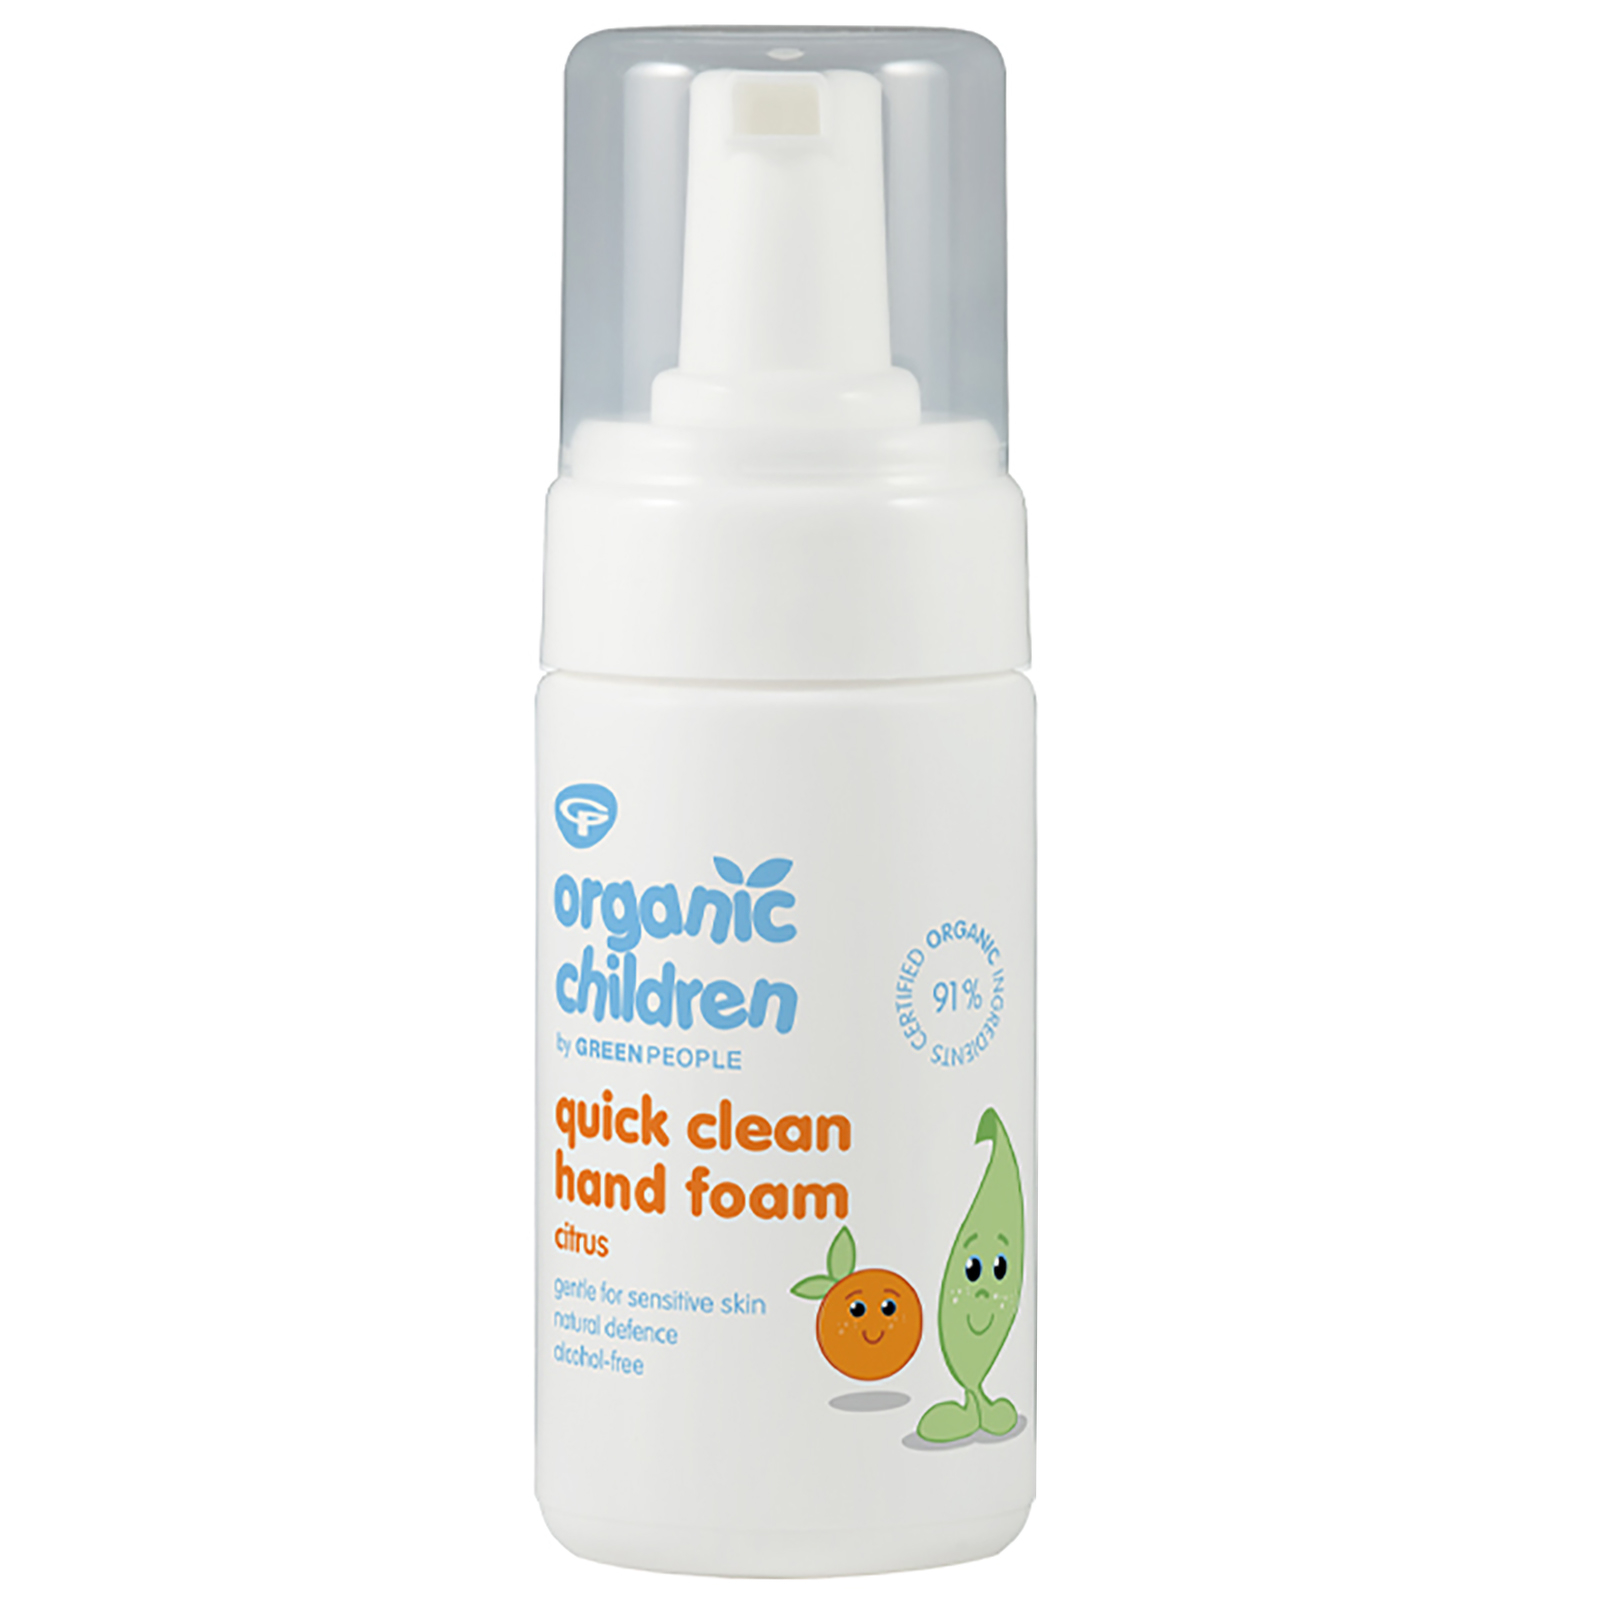 Green People Organic Children Hand Sanitiser 100ml